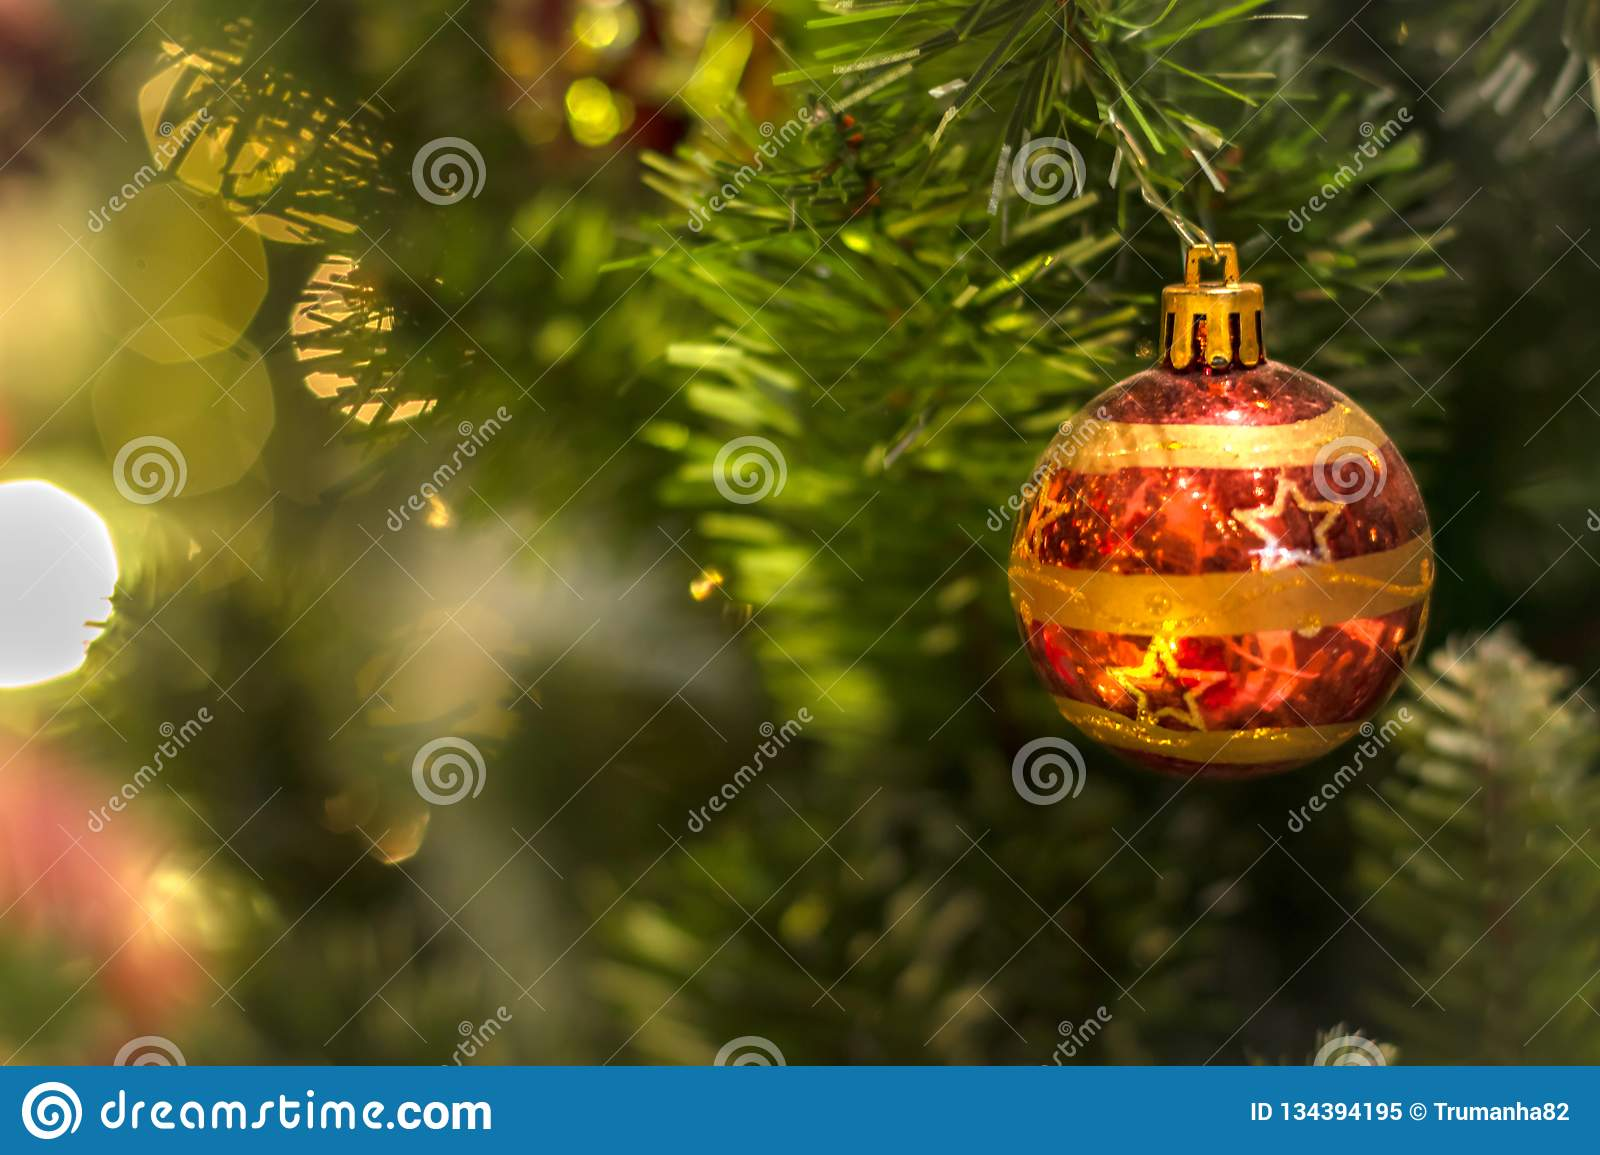 Ornament on Christmas Tree Decorations